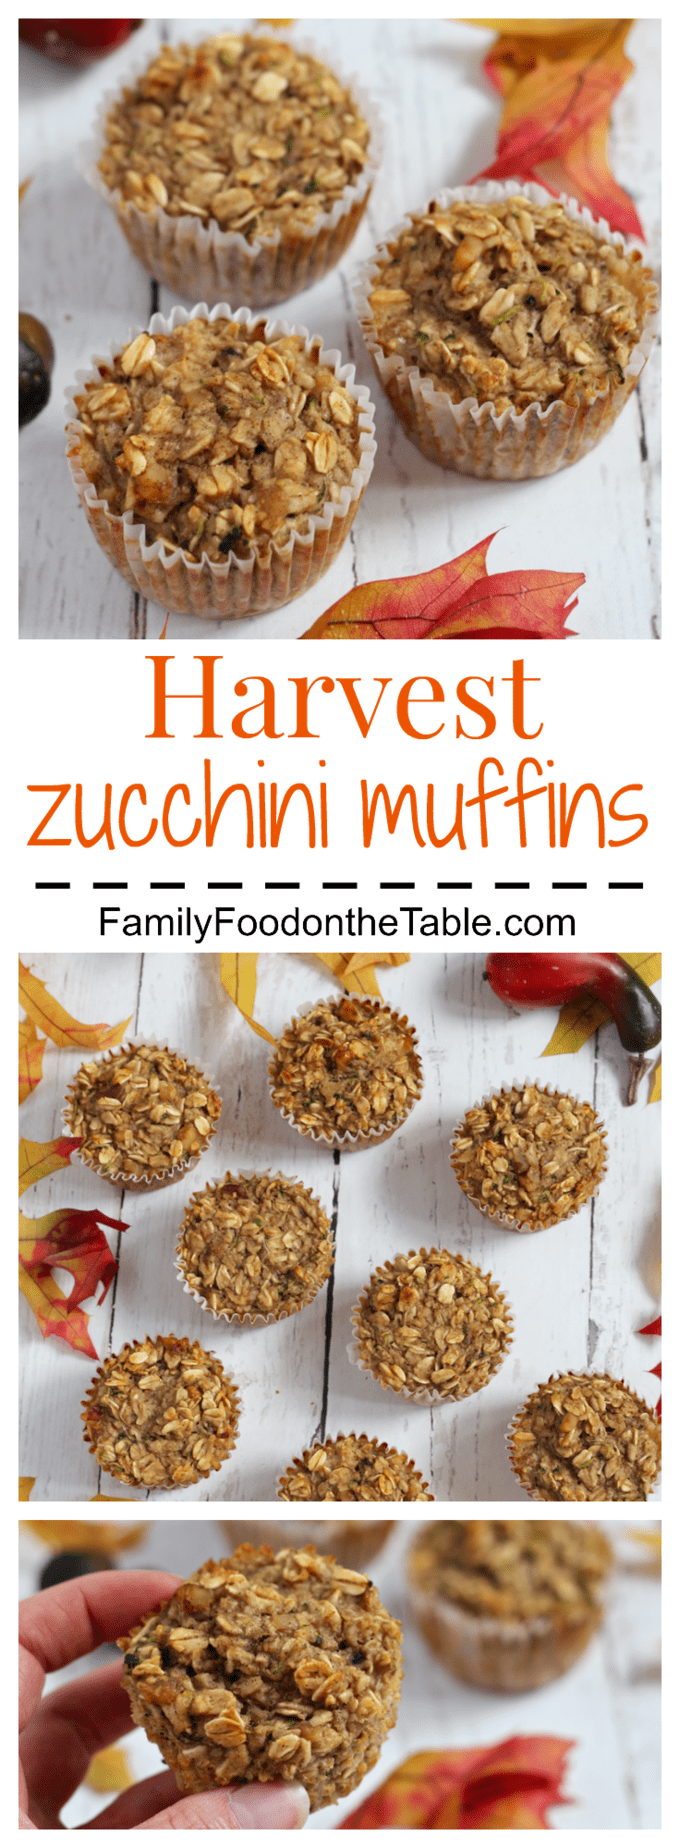 Harvest zucchini muffins are full of goodness with oats, banana, applesauce and zucchini - great for kids breakfast or school lunch!